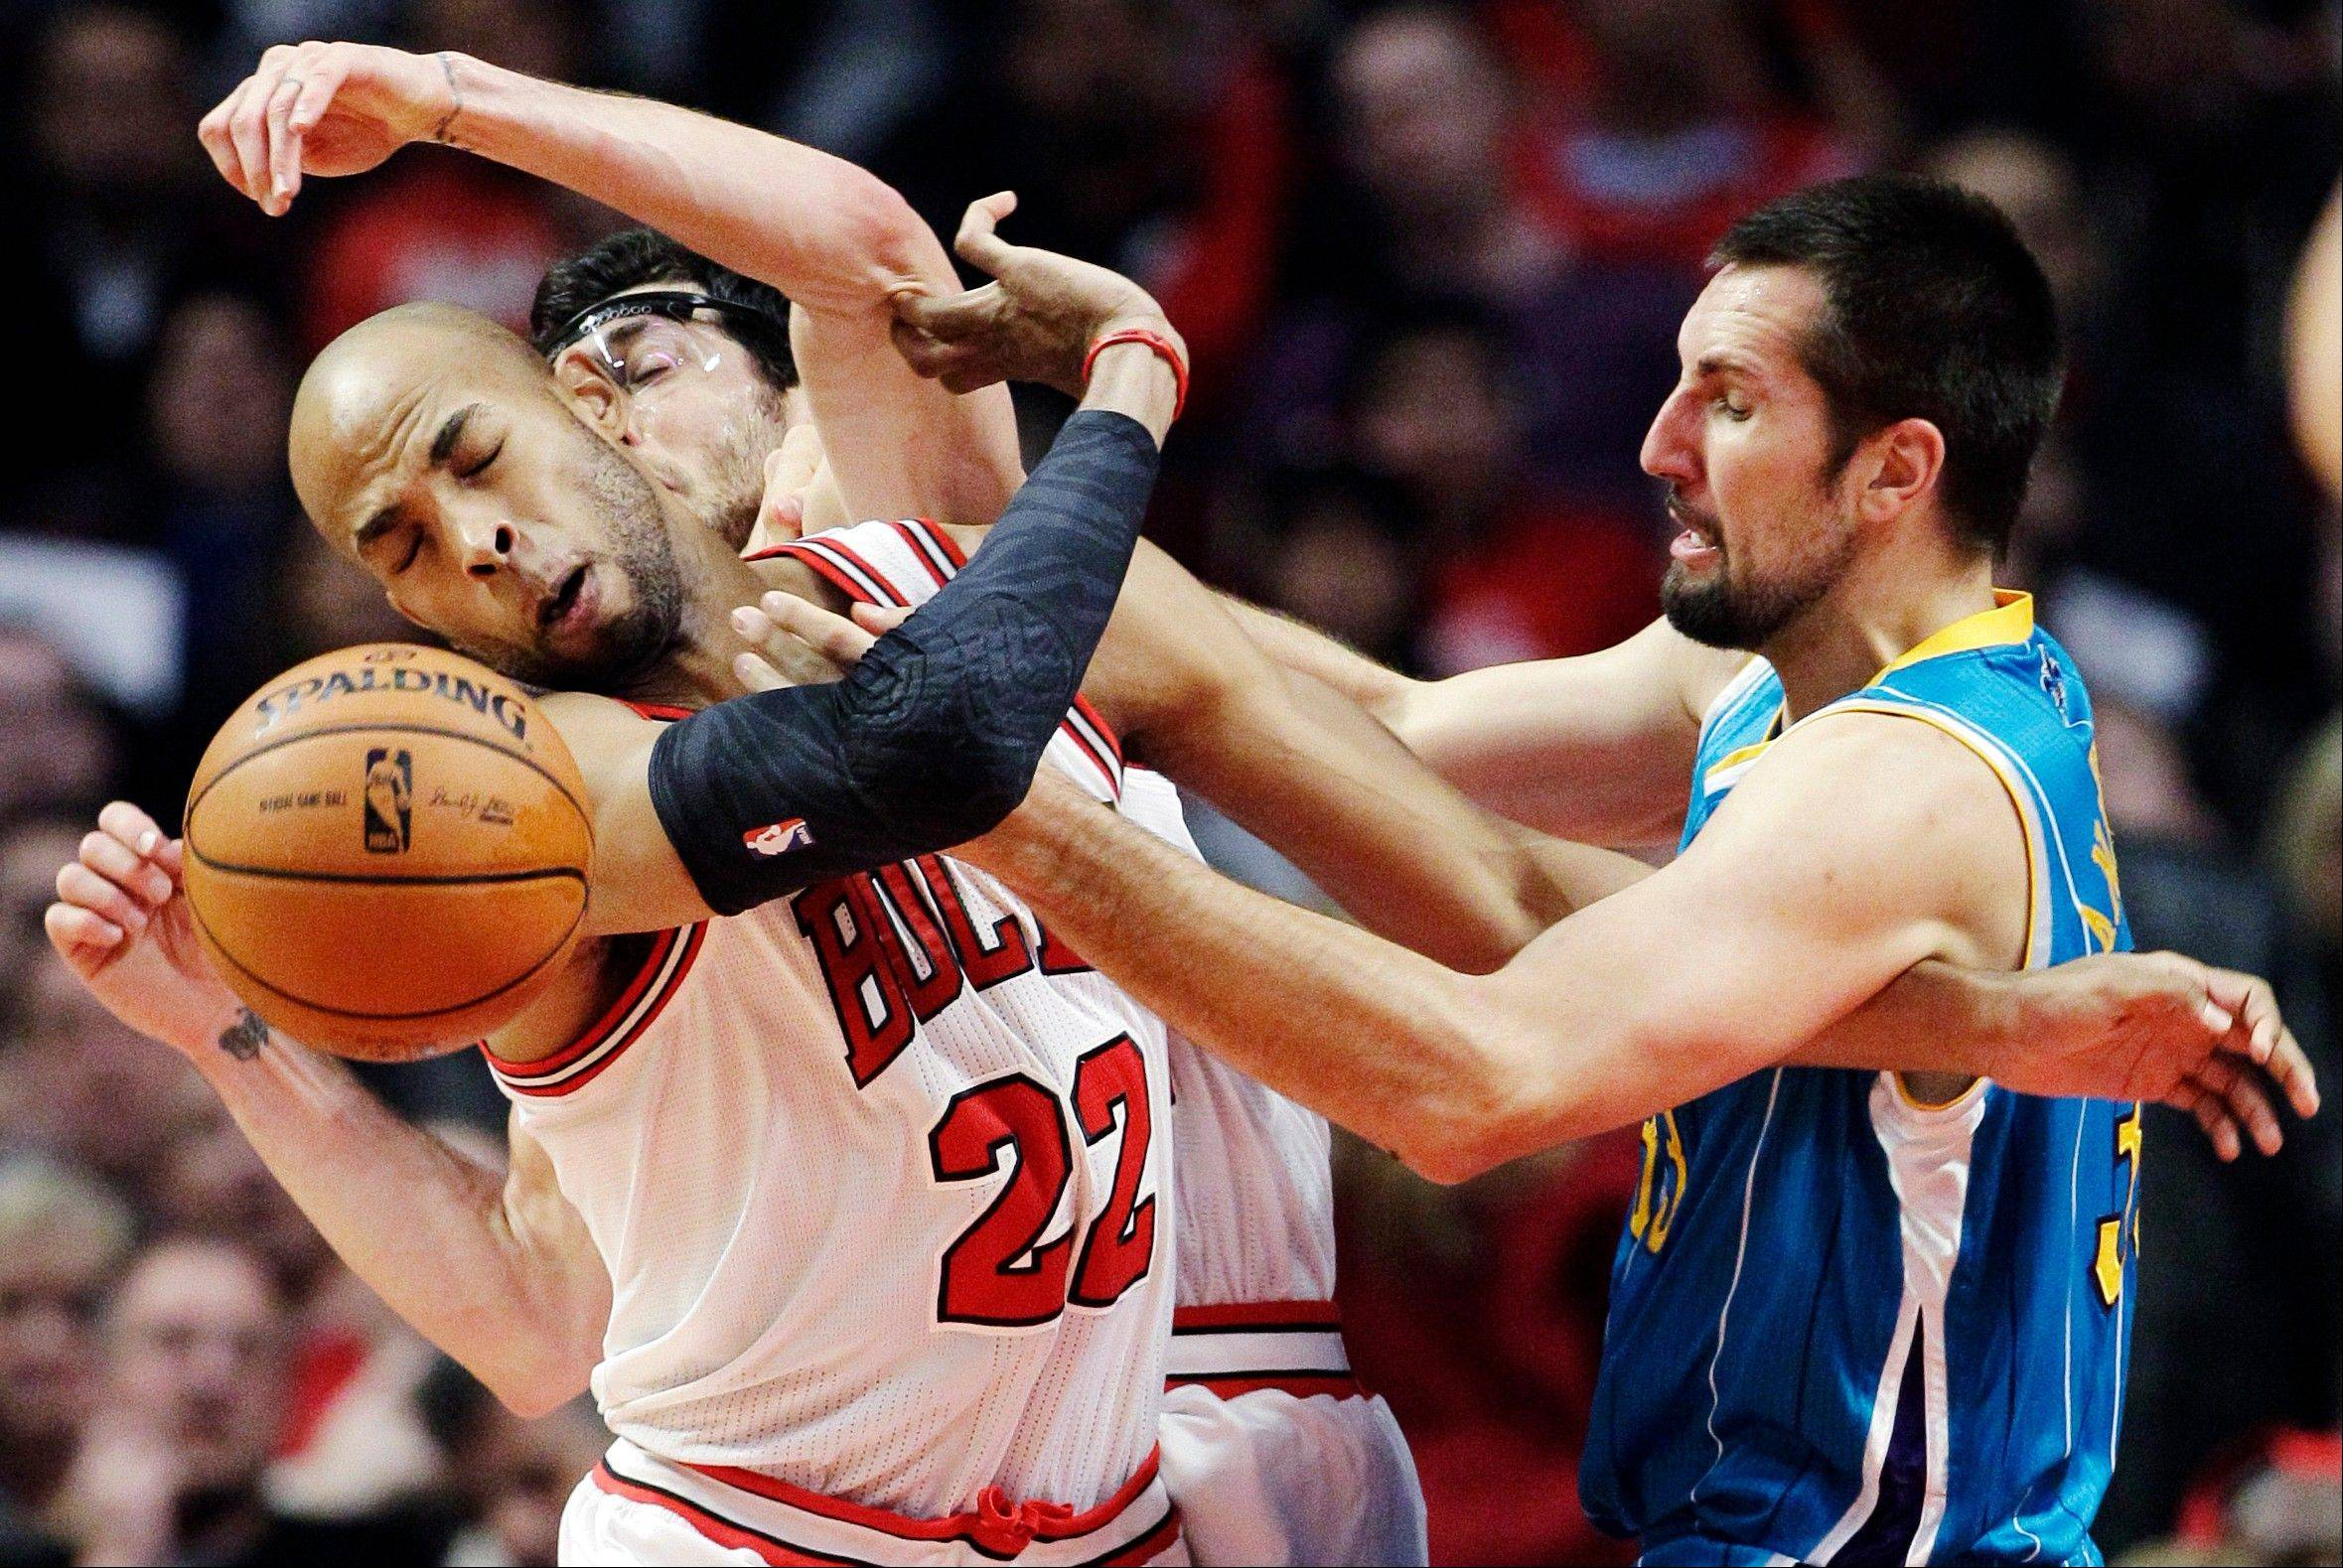 New Orleans Hornets forward Ryan Anderson, right, and Chicago Bulls forward Taj Gibson (22) and guard Kirk Hinrich (12) battle for a rebound during the first half of an NBA basketball game in Chicago, Saturday, Nov. 3, 2012.